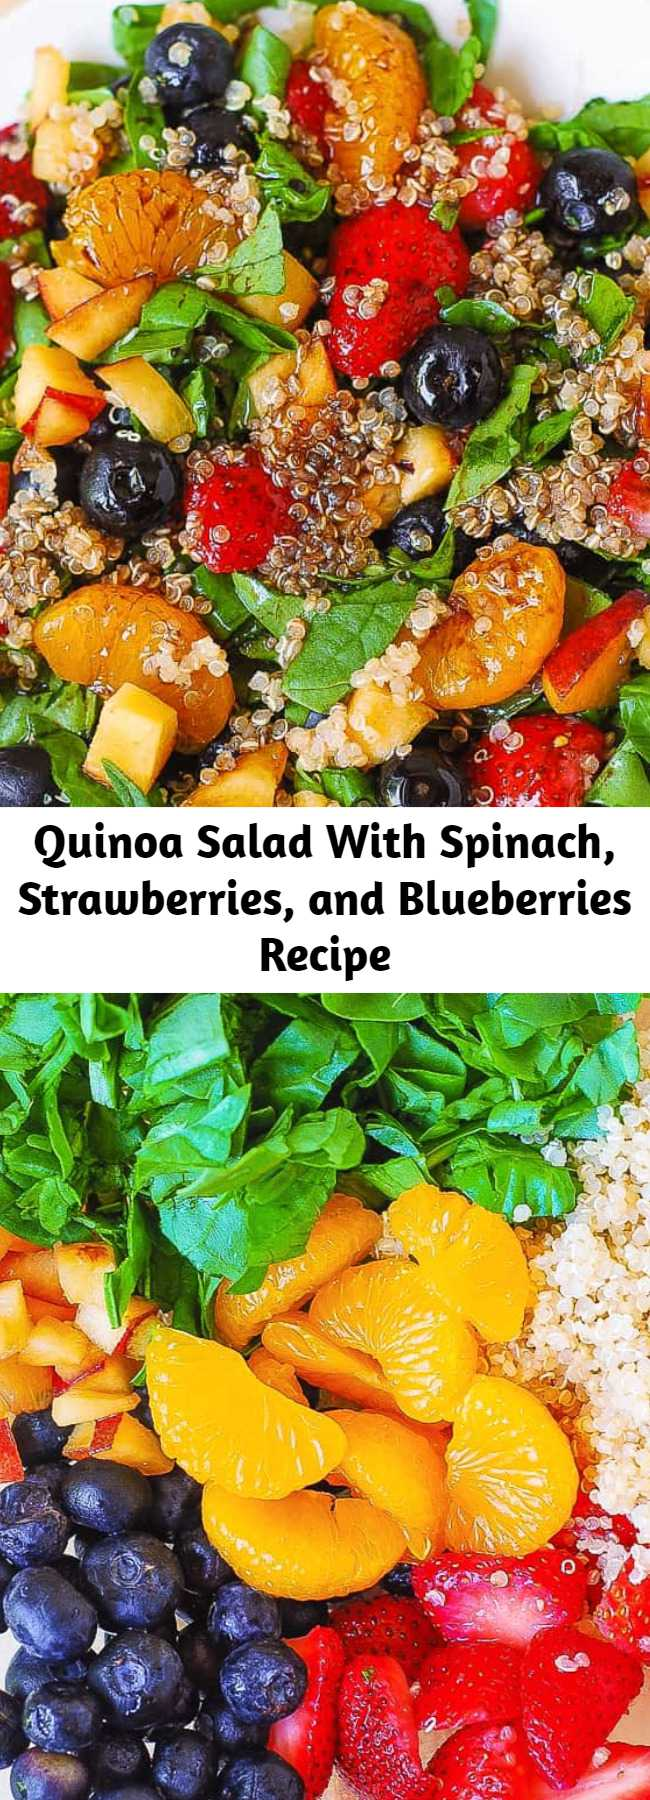 Quinoa Salad With Spinach, Strawberries, and Blueberries Recipe - Delicious Summer salad: Quinoa salad with spinach, strawberries, blueberries, peaches, mandarin oranges in a homemade Balsamic vinaigrette dressing. The dressing is made from scratch, using olive oil, balsamic vinegar, brown sugar, mustard powder, onion and garlic powders. This healthy quinoa salad is gluten free, dairy free, vegan, nut free, packed with fiber and nutrients.